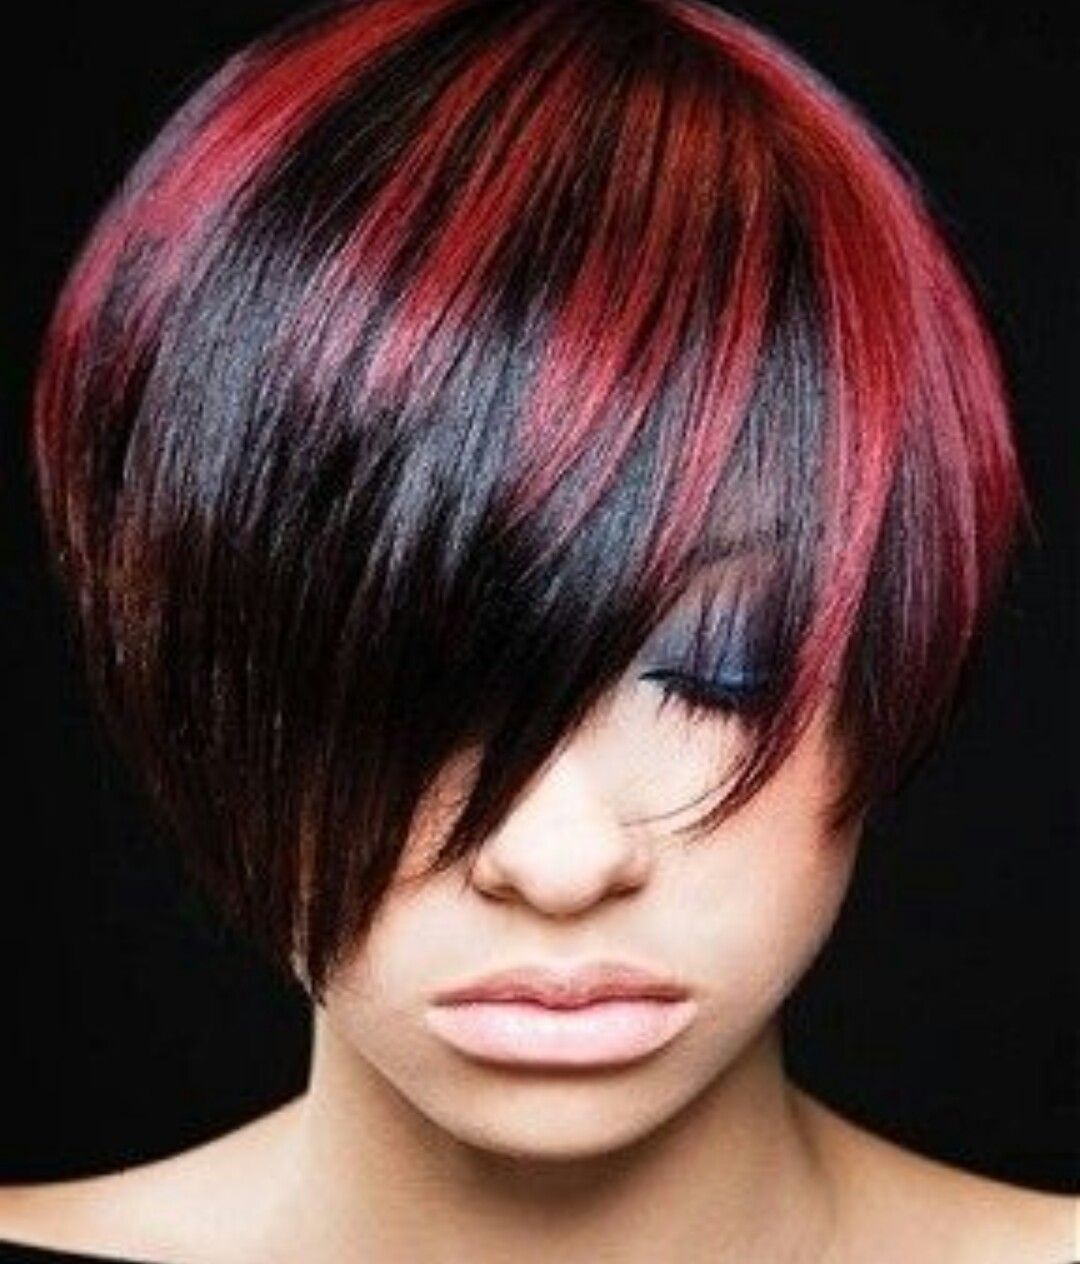 Pin by bianca sheldon on hair pinterest hair coloring and hair cuts